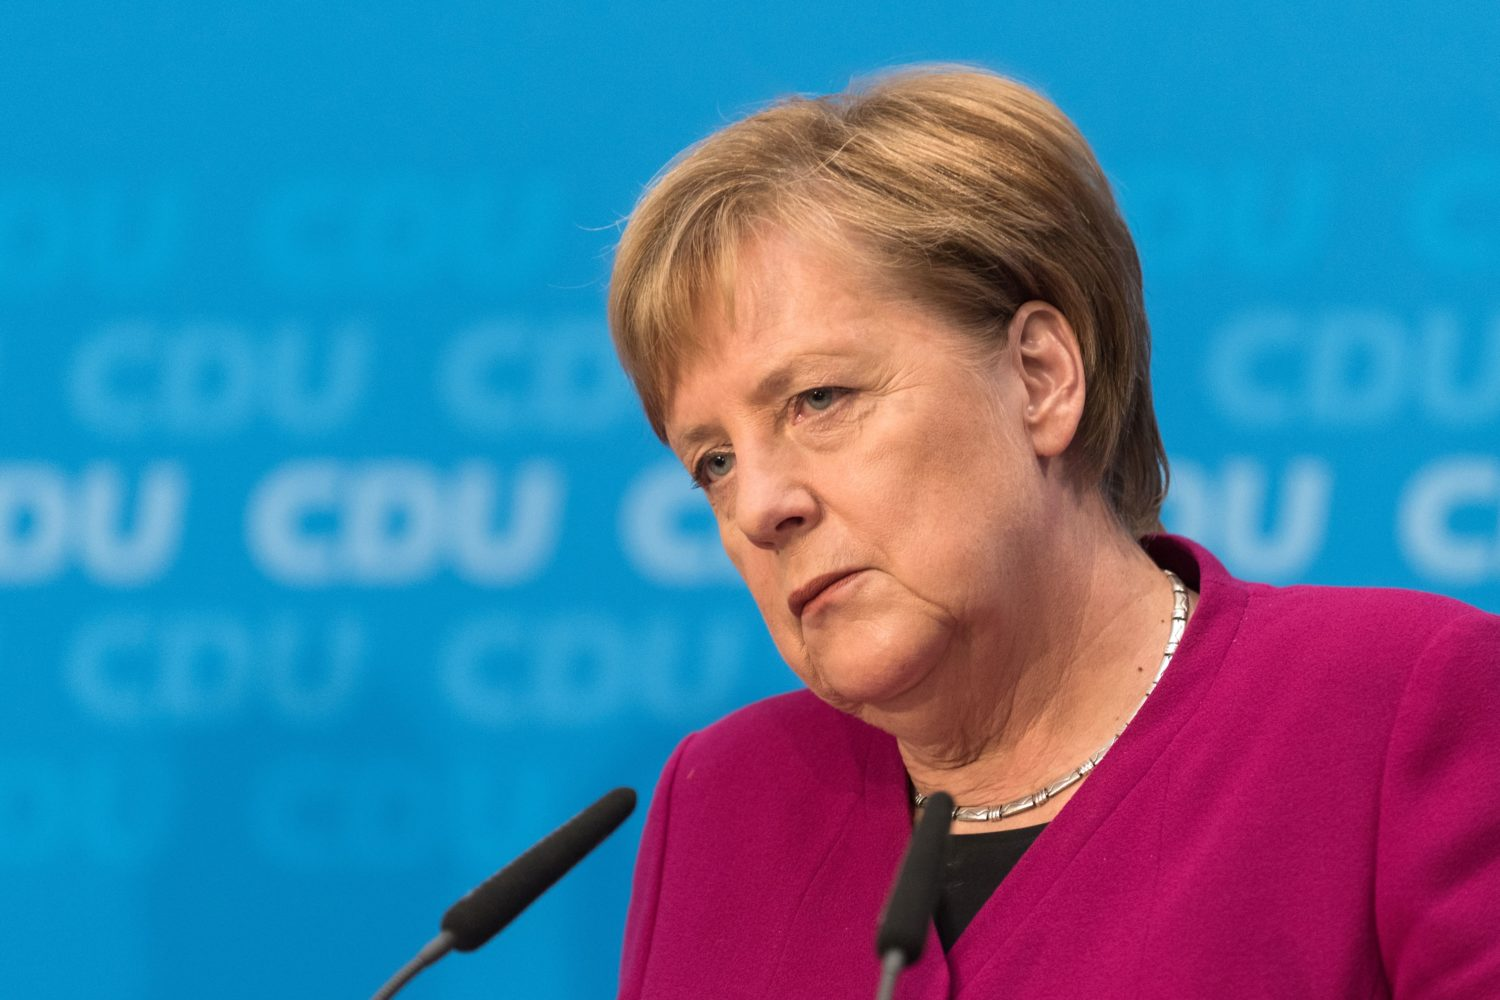 GERMANY: Merkel plans to take in around 1,500 migrants